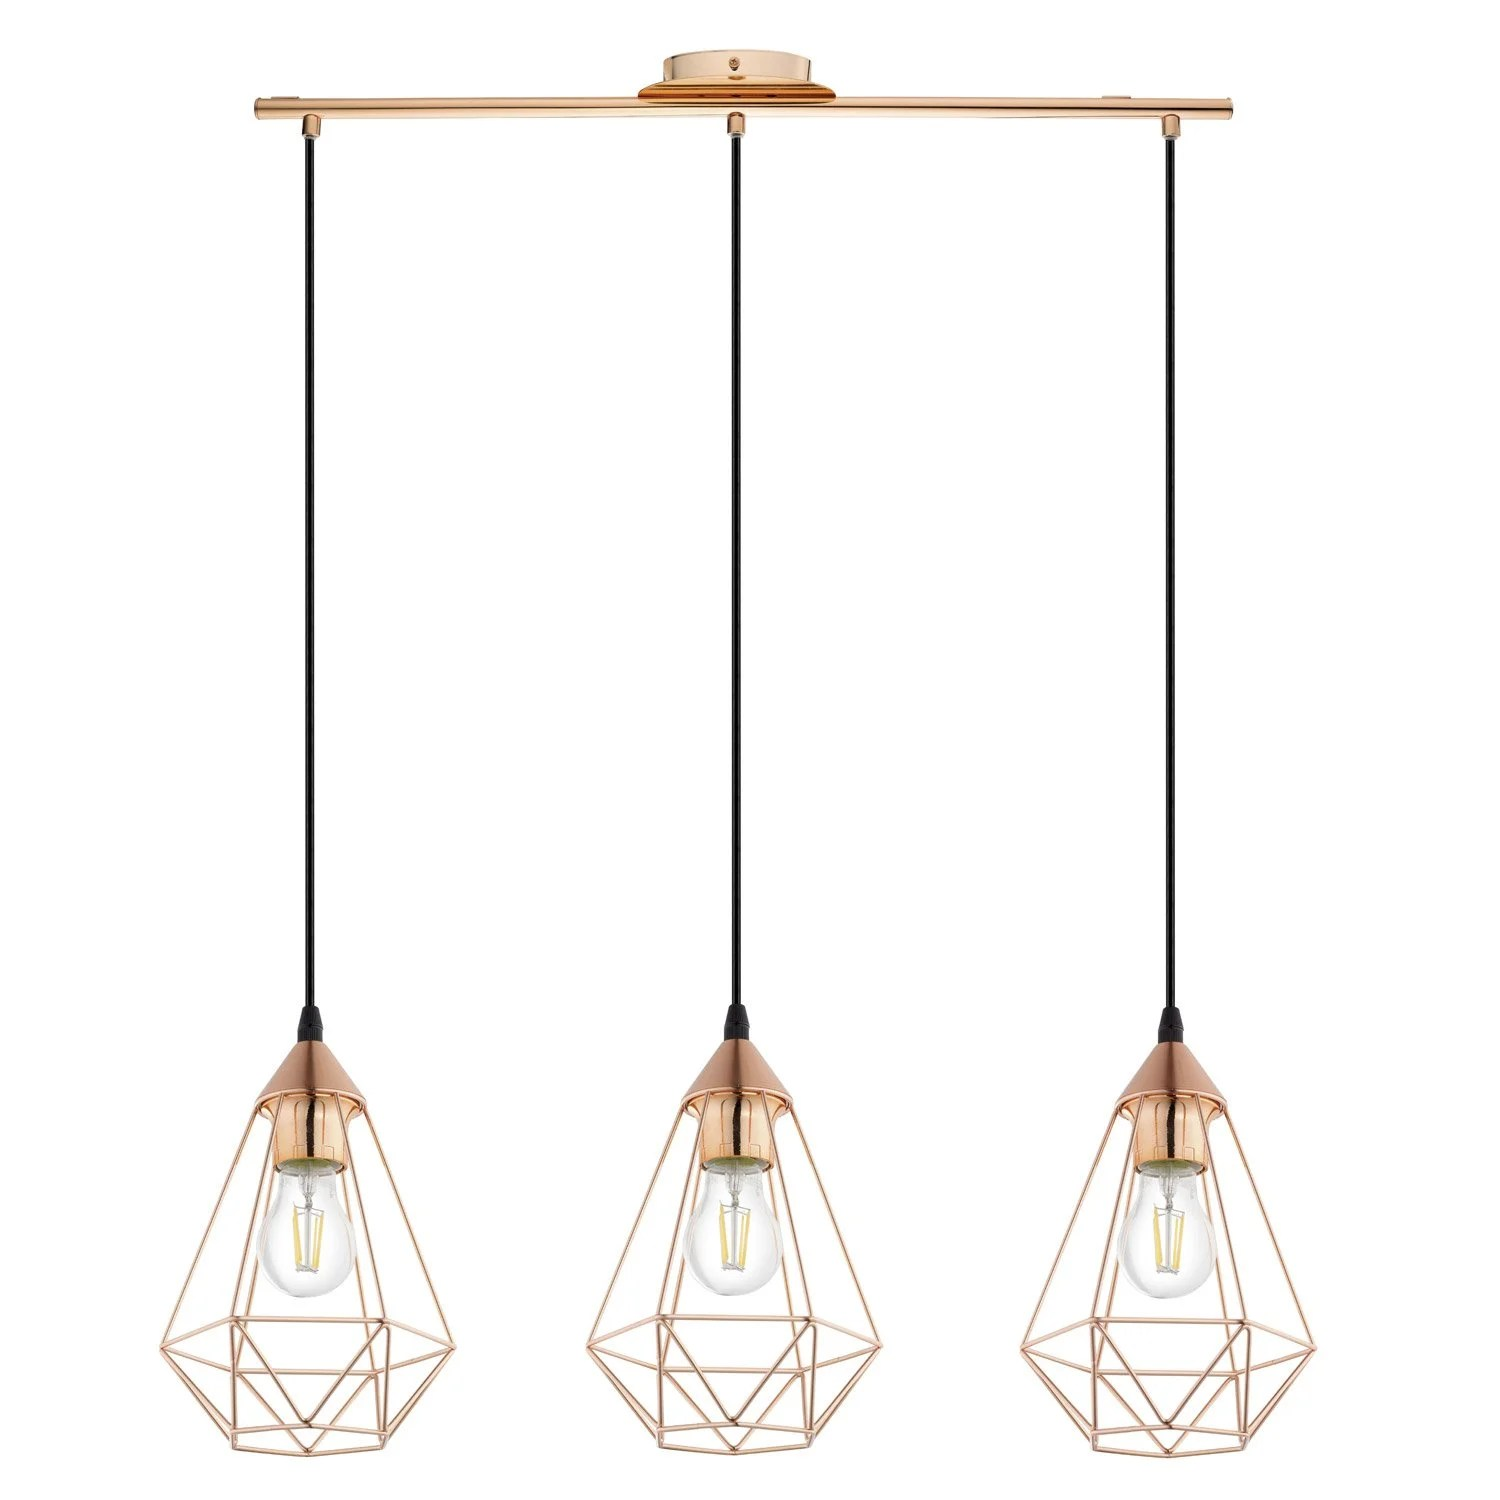 Luminaire Inspire Leroy Merlin E27 Suspension Industrial Style Byron D17 5 Metal Copper 3 X 60 W Inspire